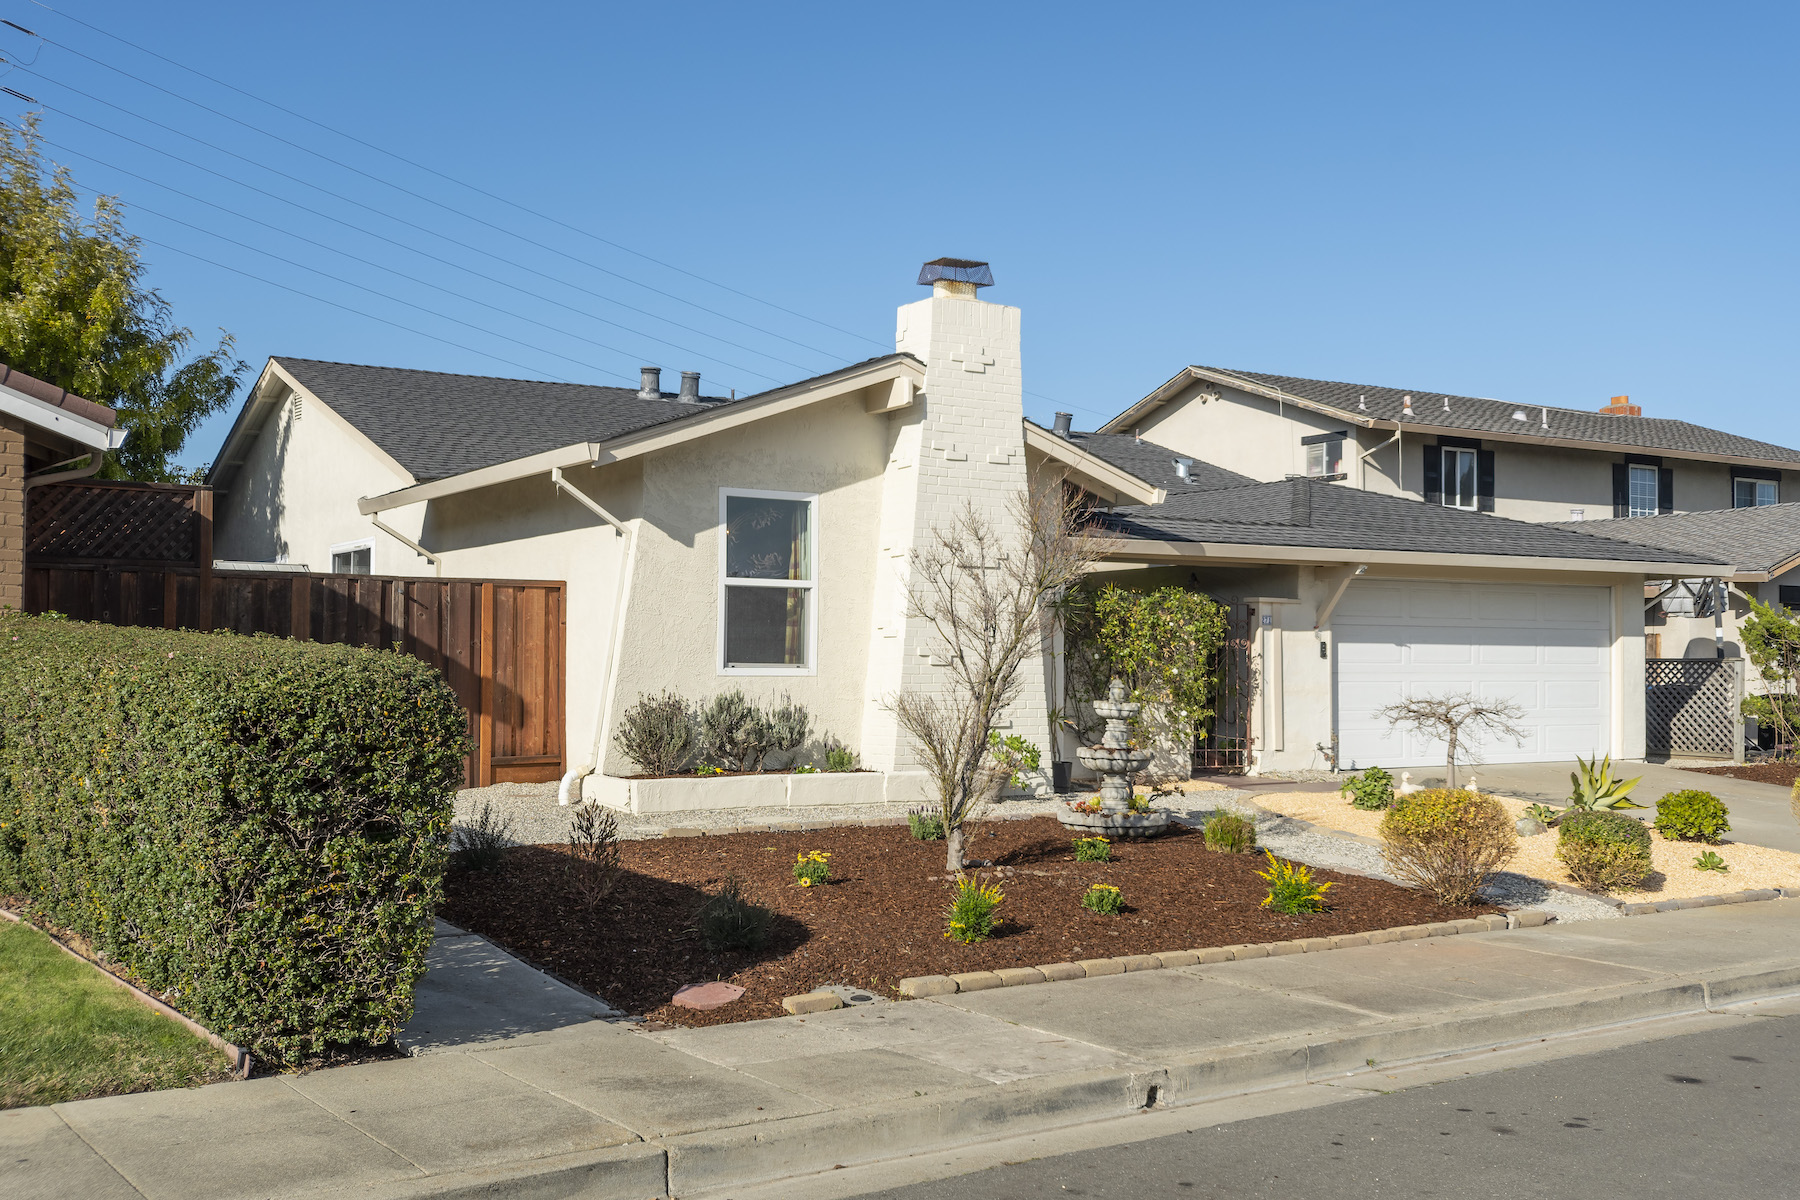 Single Family Home for Active at Warm and Inviting House in Foster City 271 Curlew Court Foster City, California 94404 United States